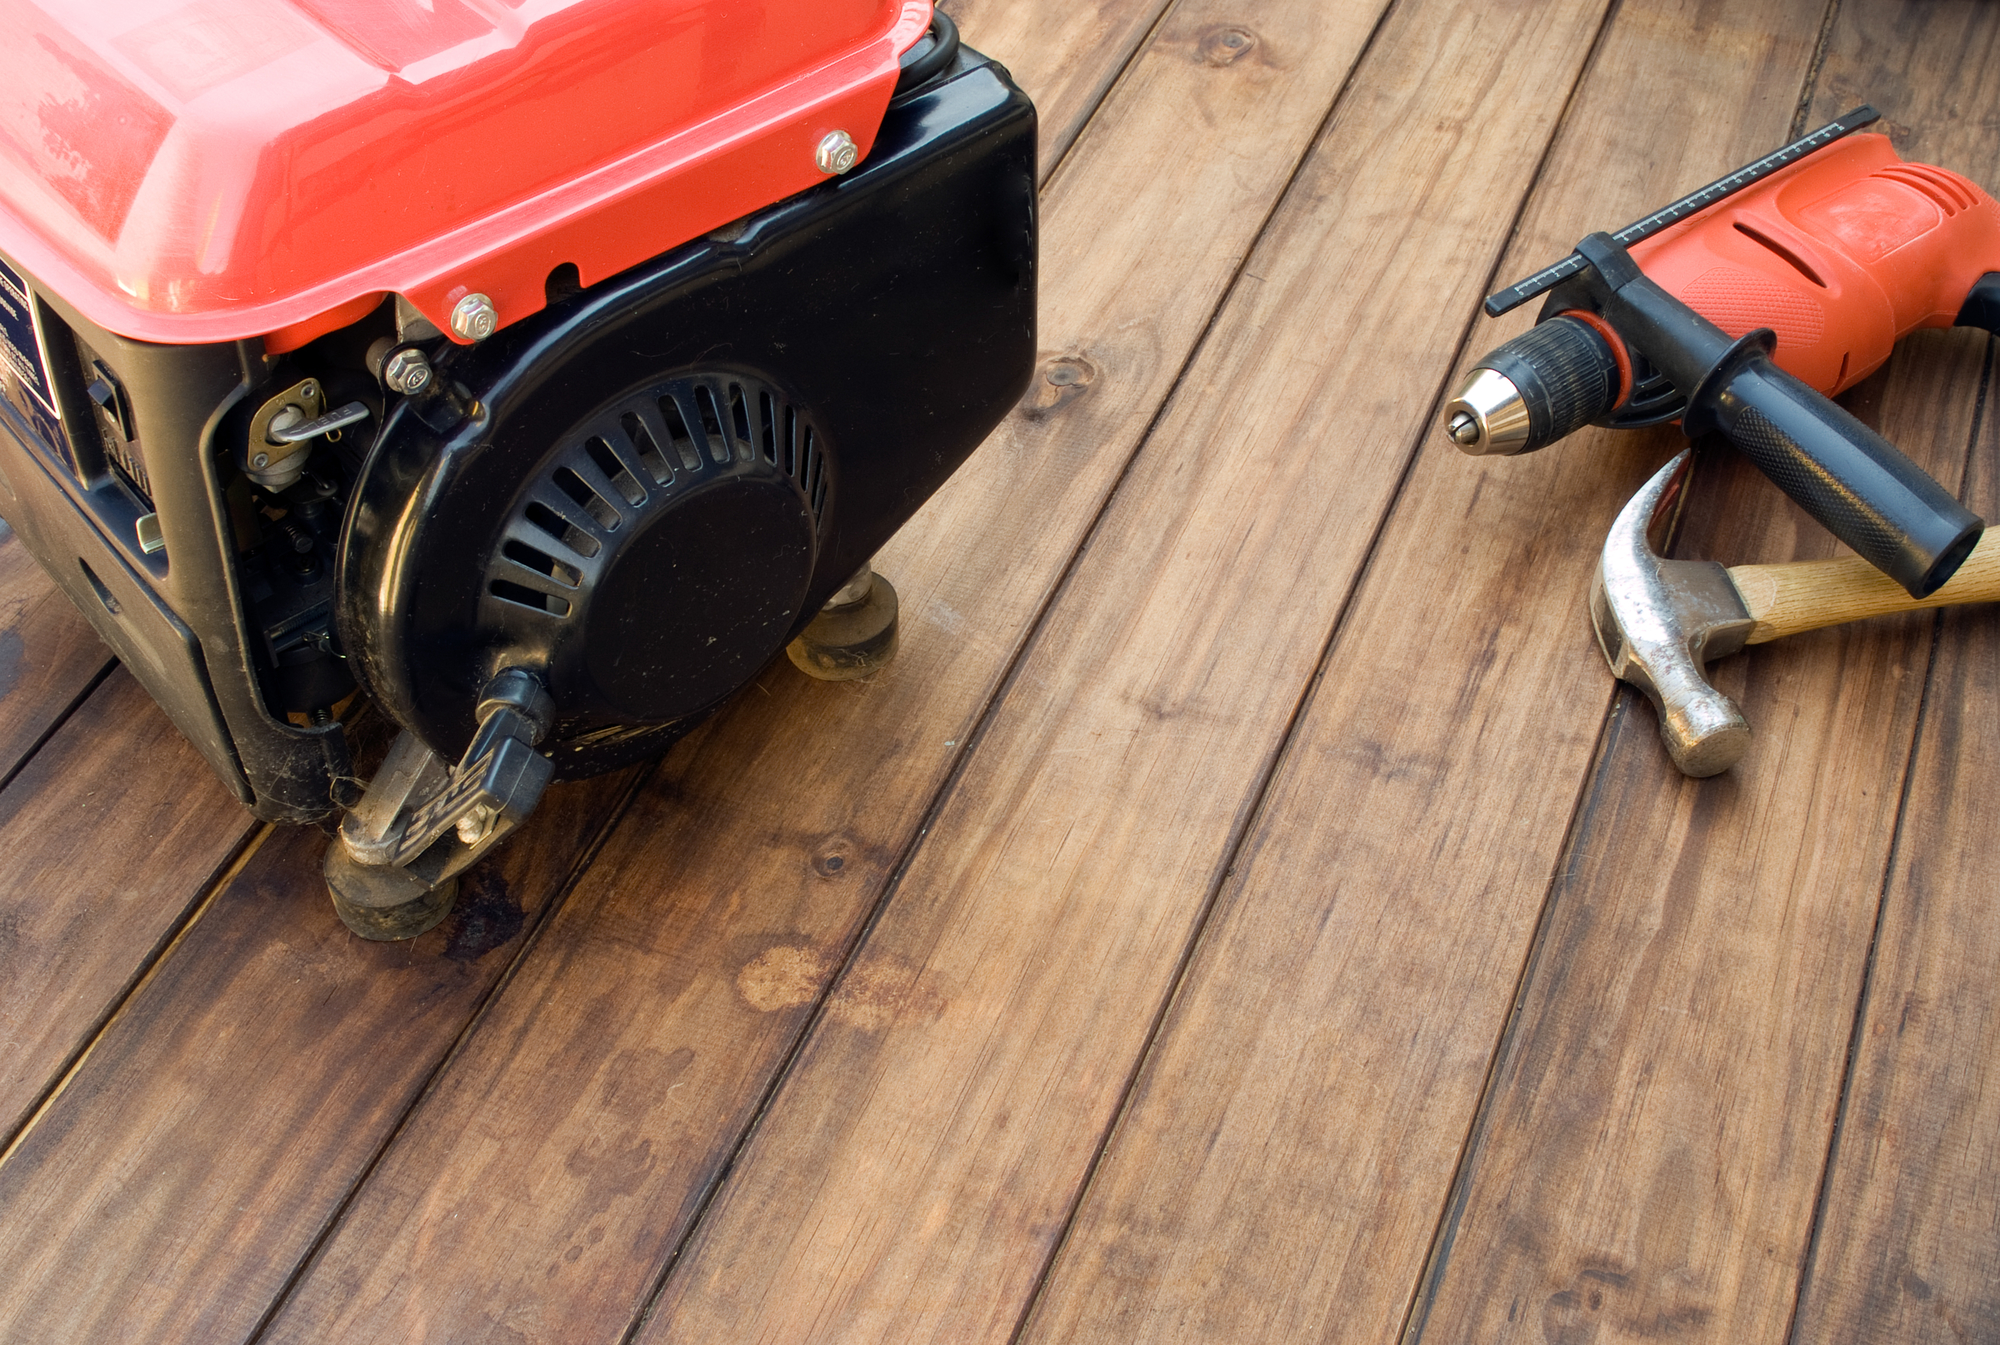 Home portable generator, drill, and hammer on wooden table